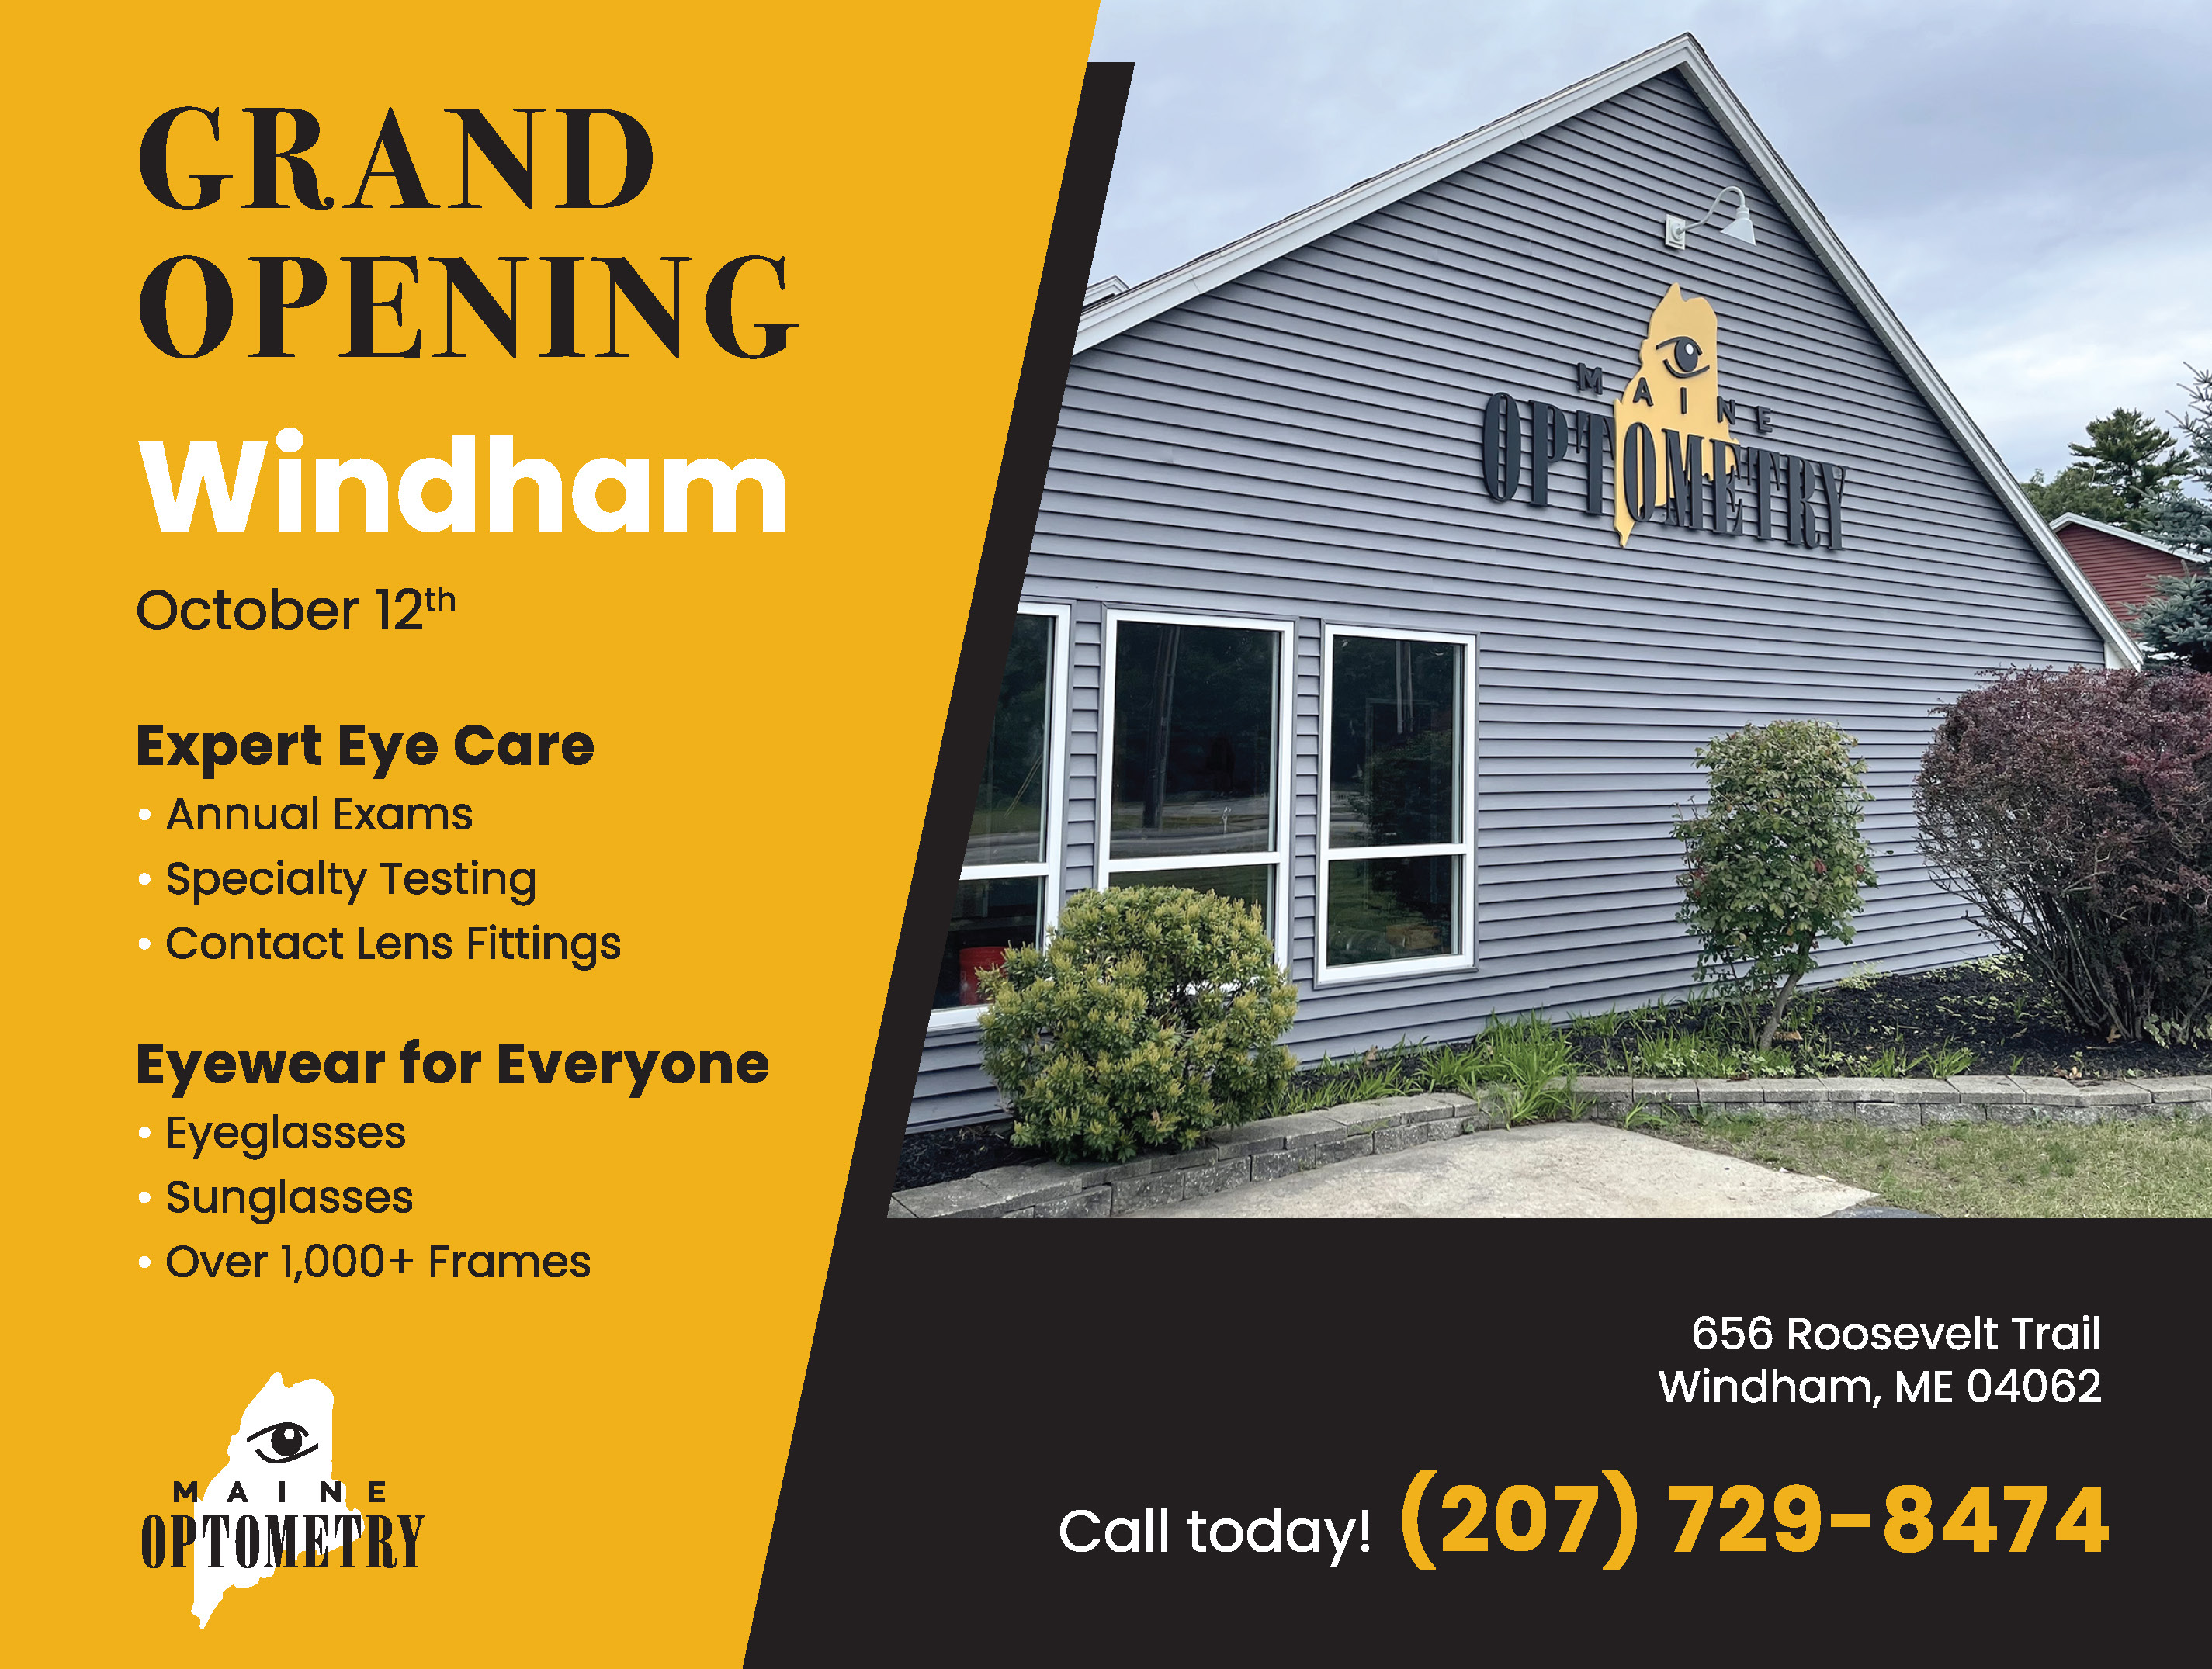 http://maineoptometry.com/